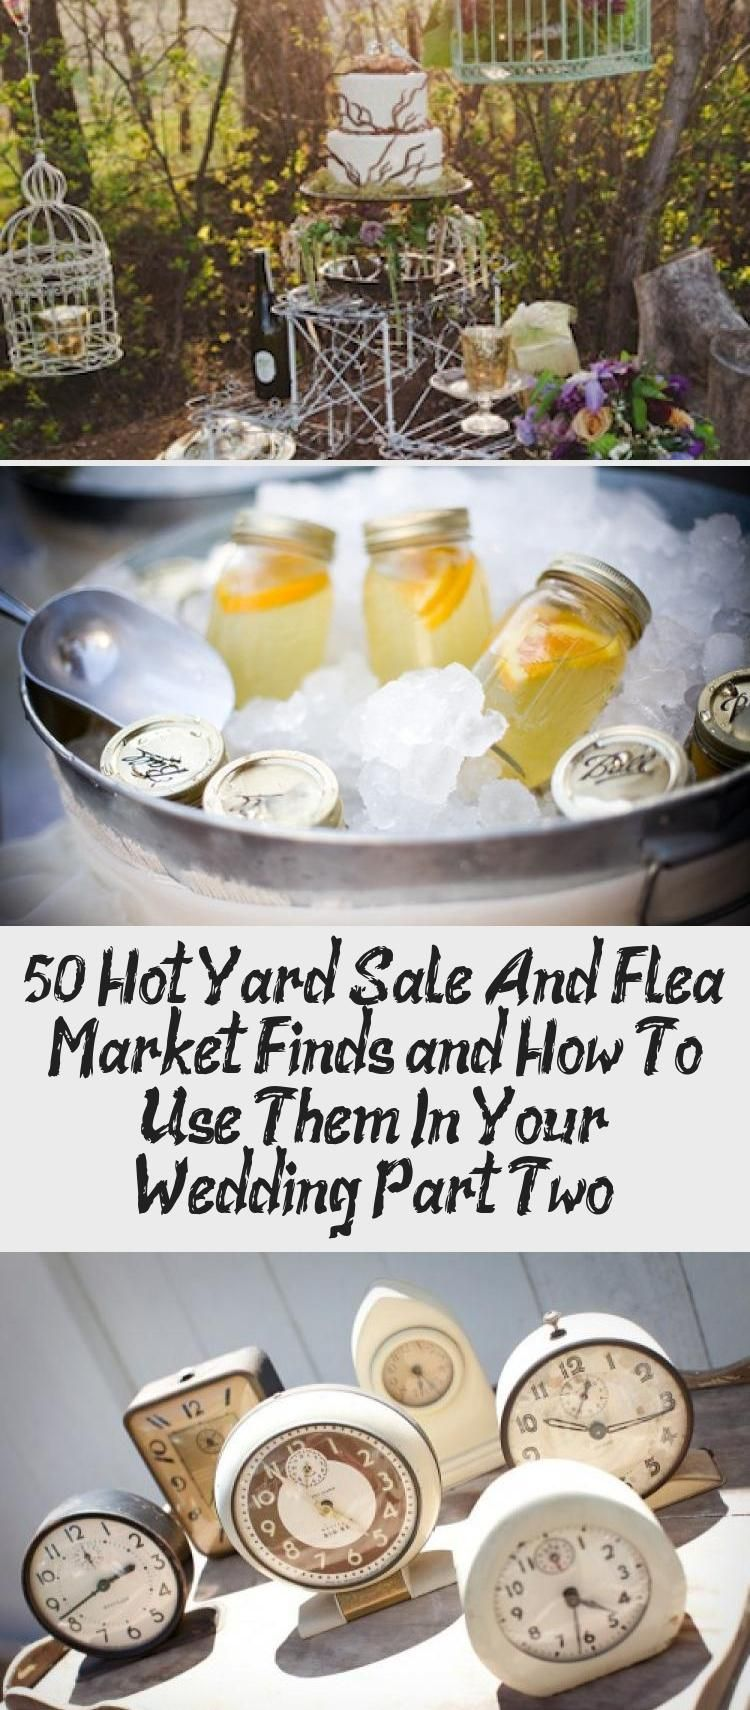 50 Hot Yard Sale And Flea Market Finds And How To Use Them In Your Wedding Part Two Inti In 2020 Southern Wedding Ideas Country Southern Wedding Southern Weddings